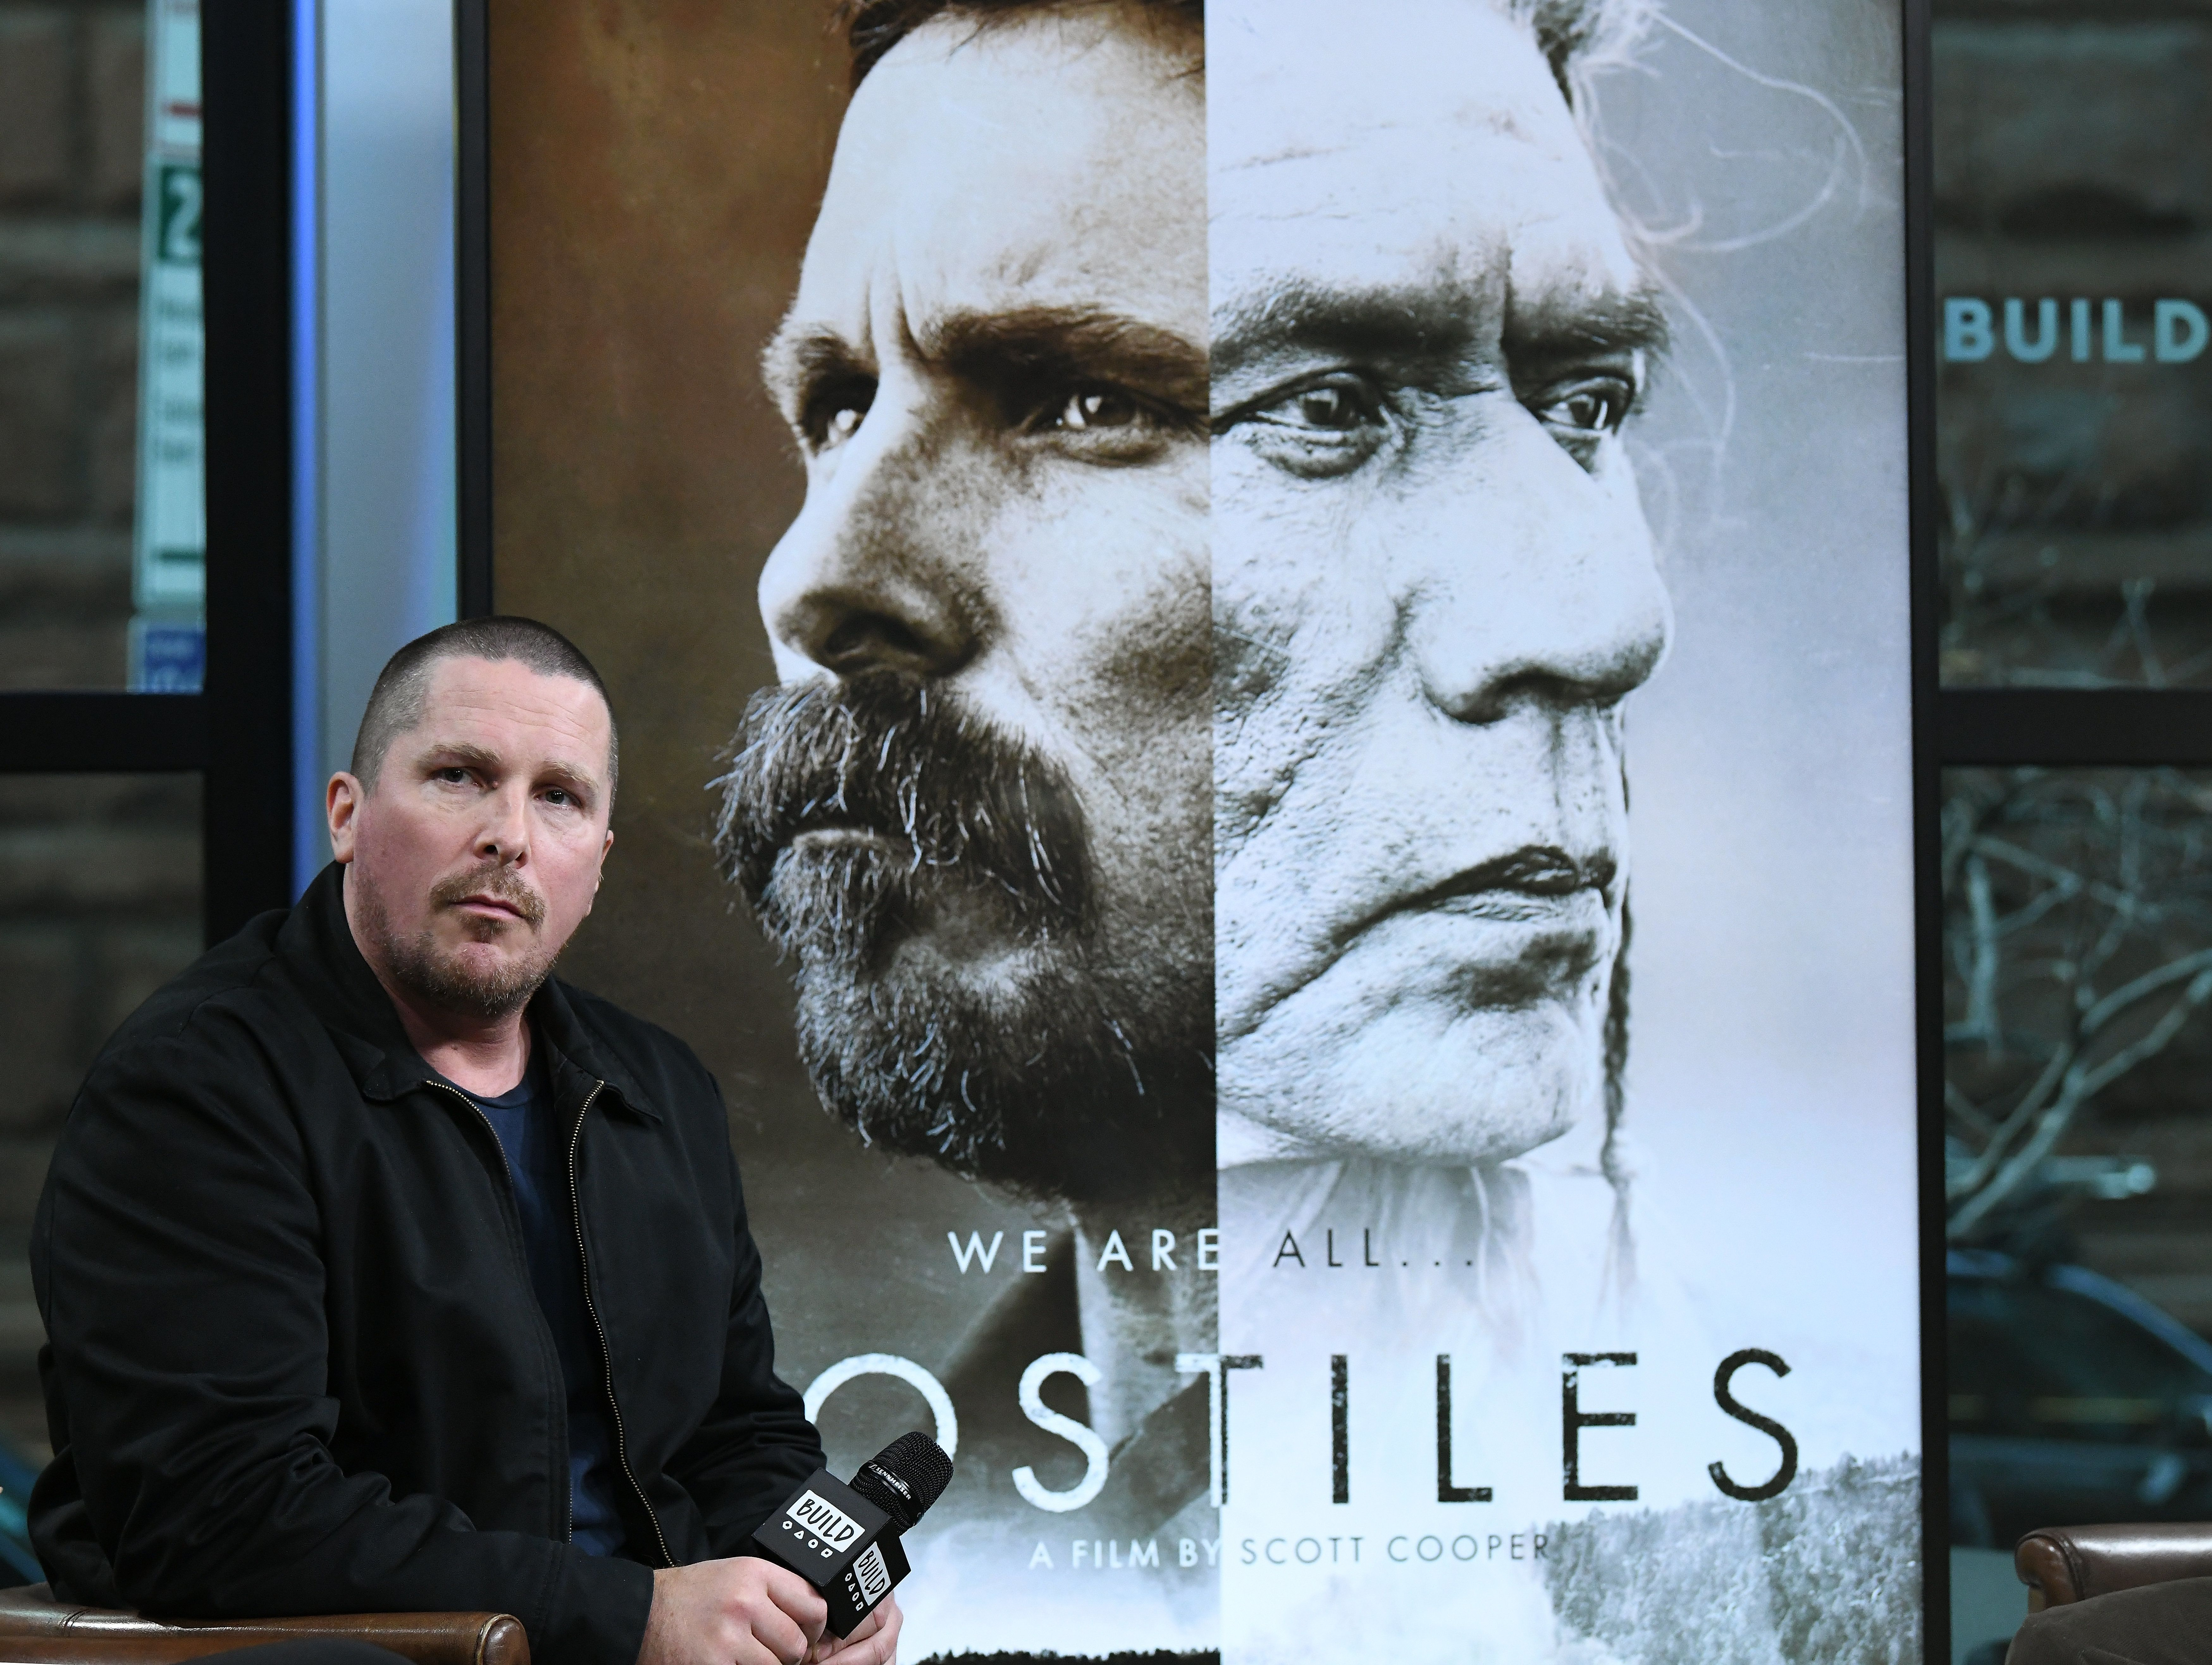 NEW YORK, NY - DECEMBER 18:  (EXCLUSIVE COVERAGE) Actor Christian Bale visits Build to discuss 'Hostiles' at Build Studio on December 18, 2017 in New York City.  (Photo by Slaven Vlasic/Getty Images)